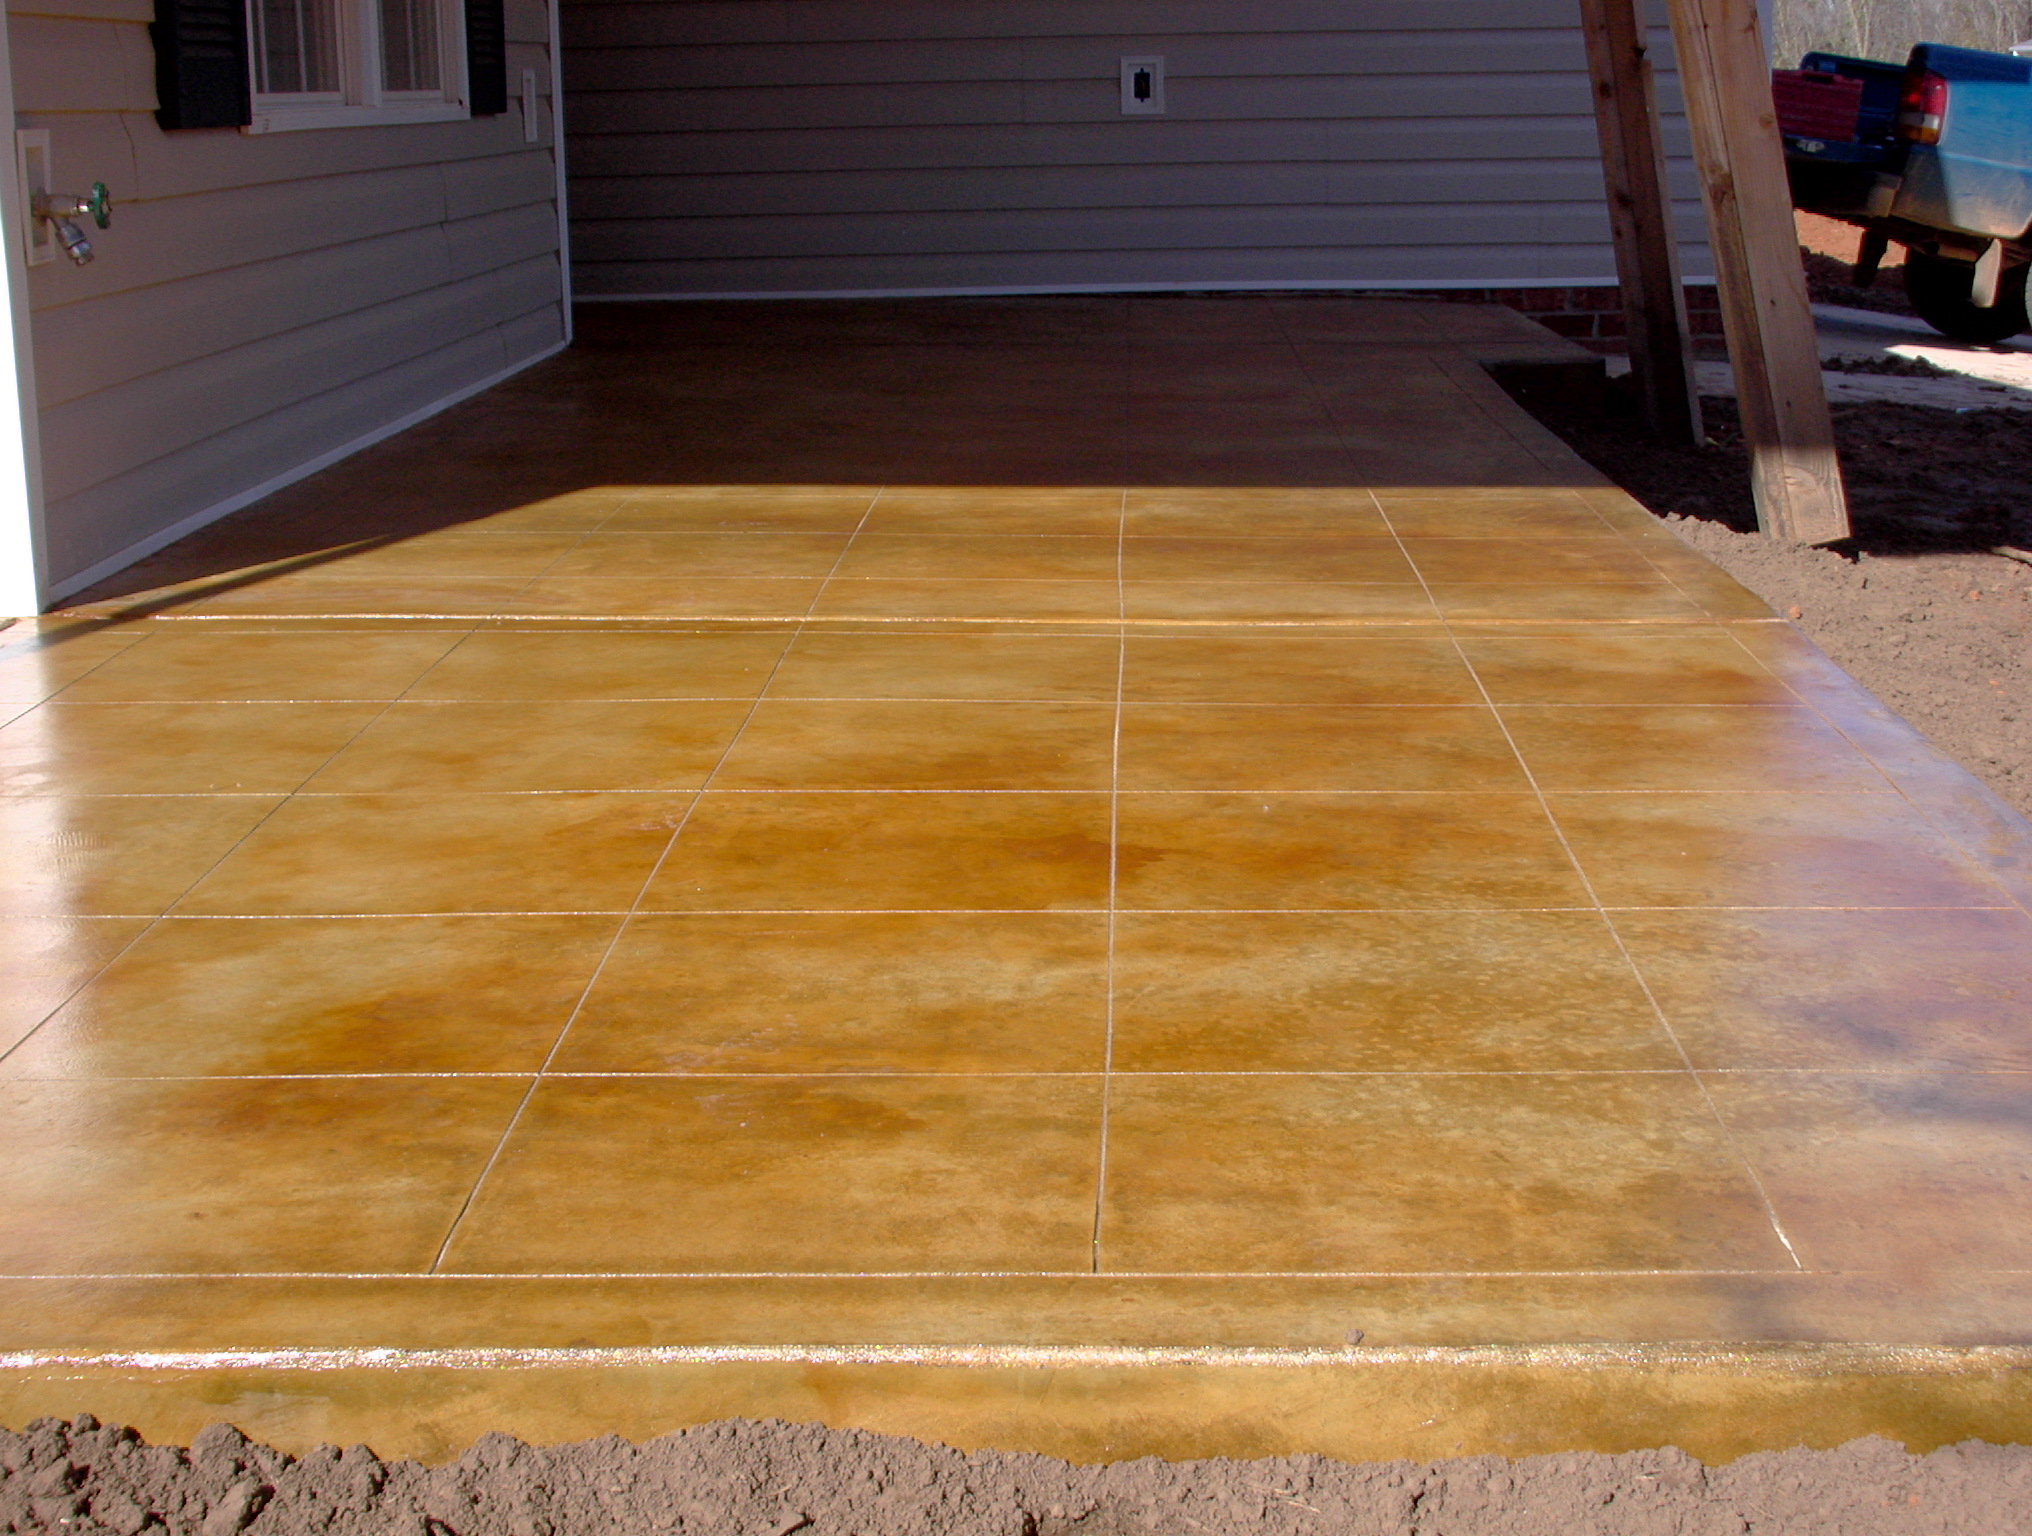 Tan acid stained patio